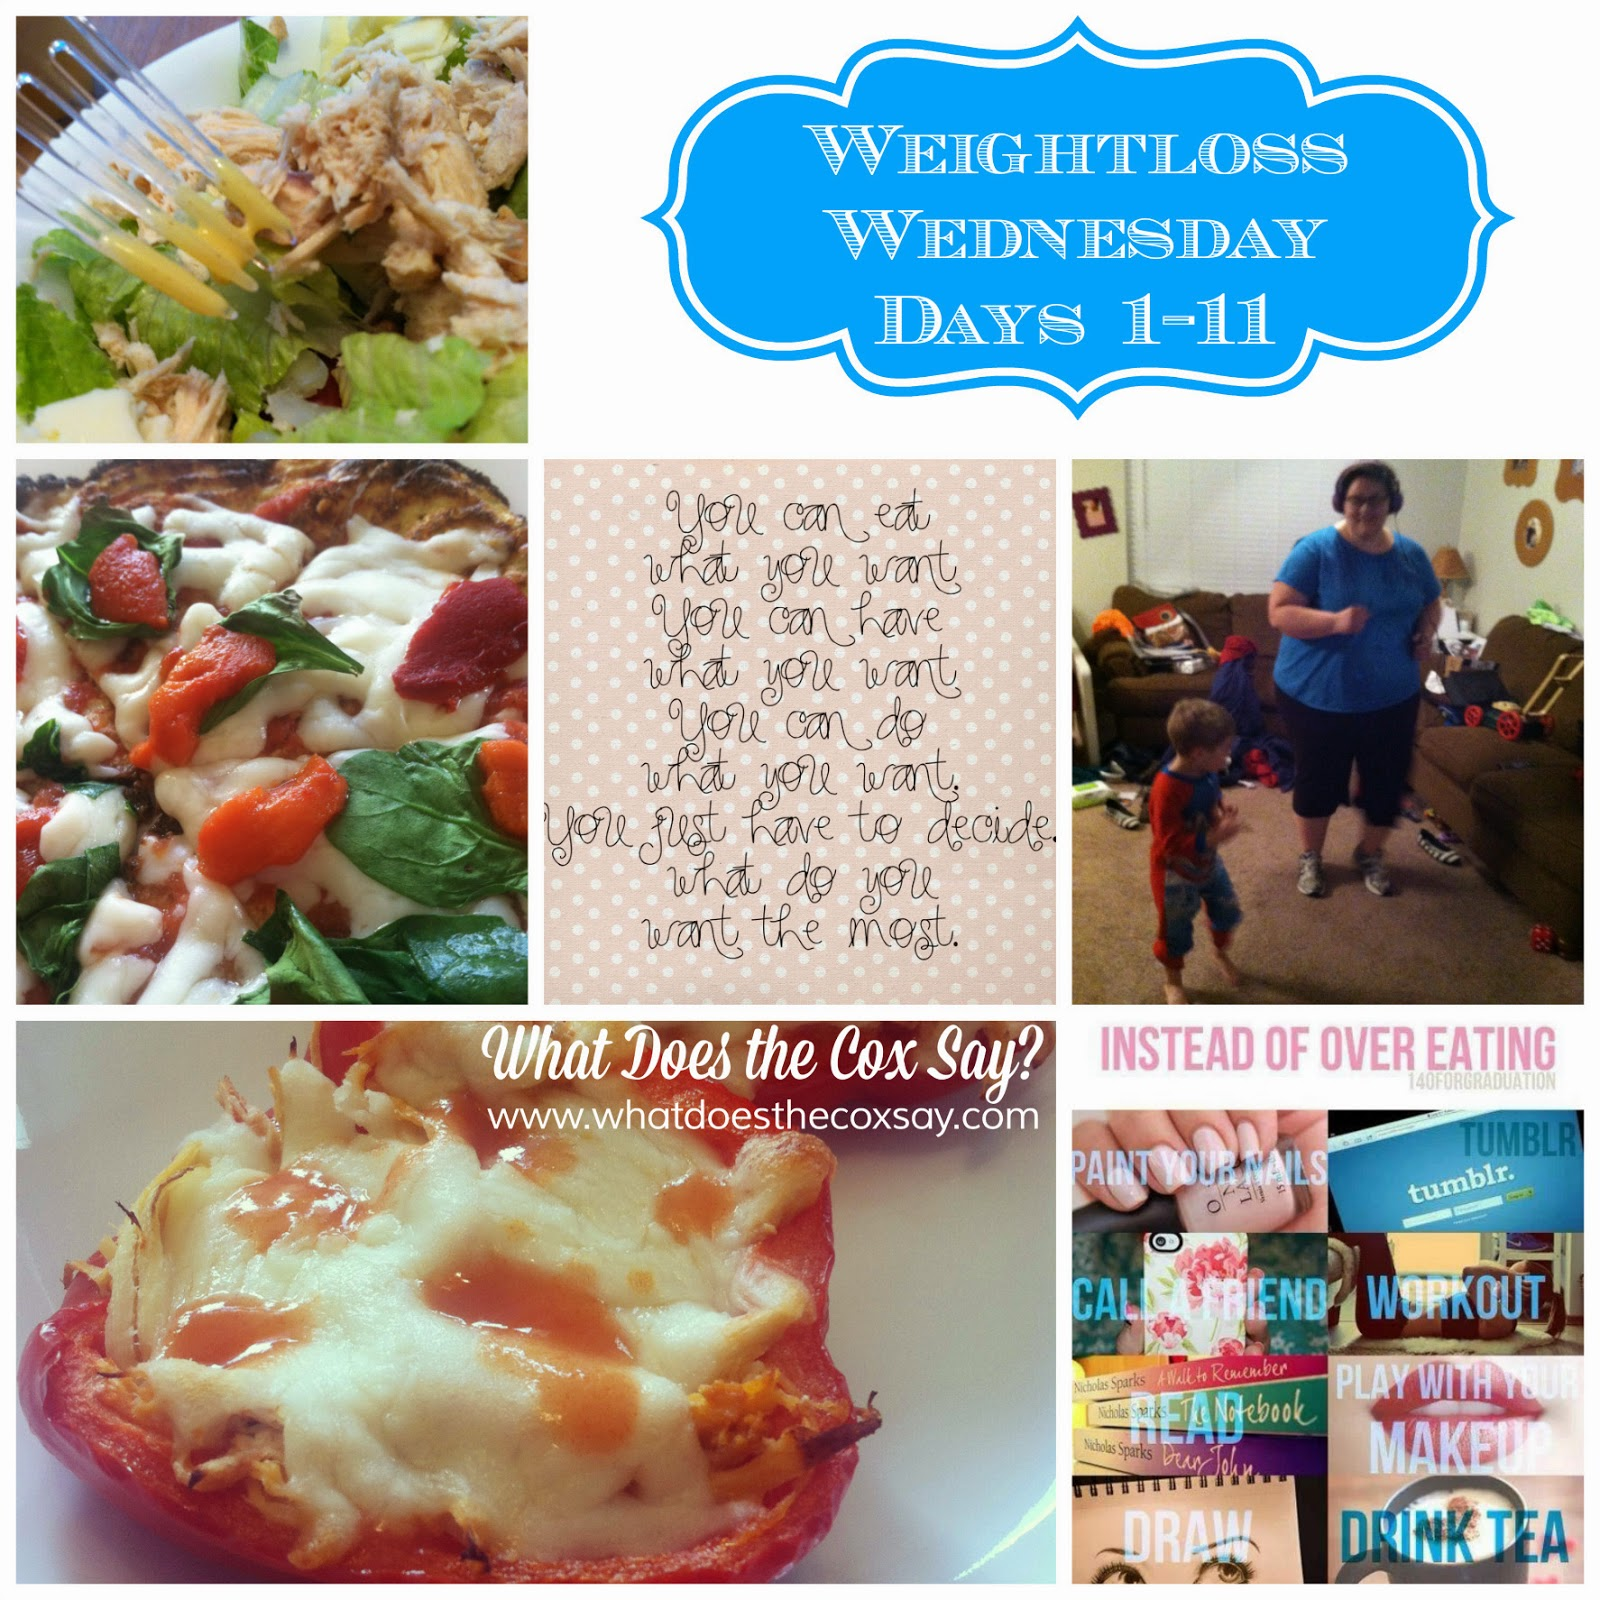 Weight Loss Inspiration #tsfl #takeshapeforlife #whatdoesthecoxsay.com